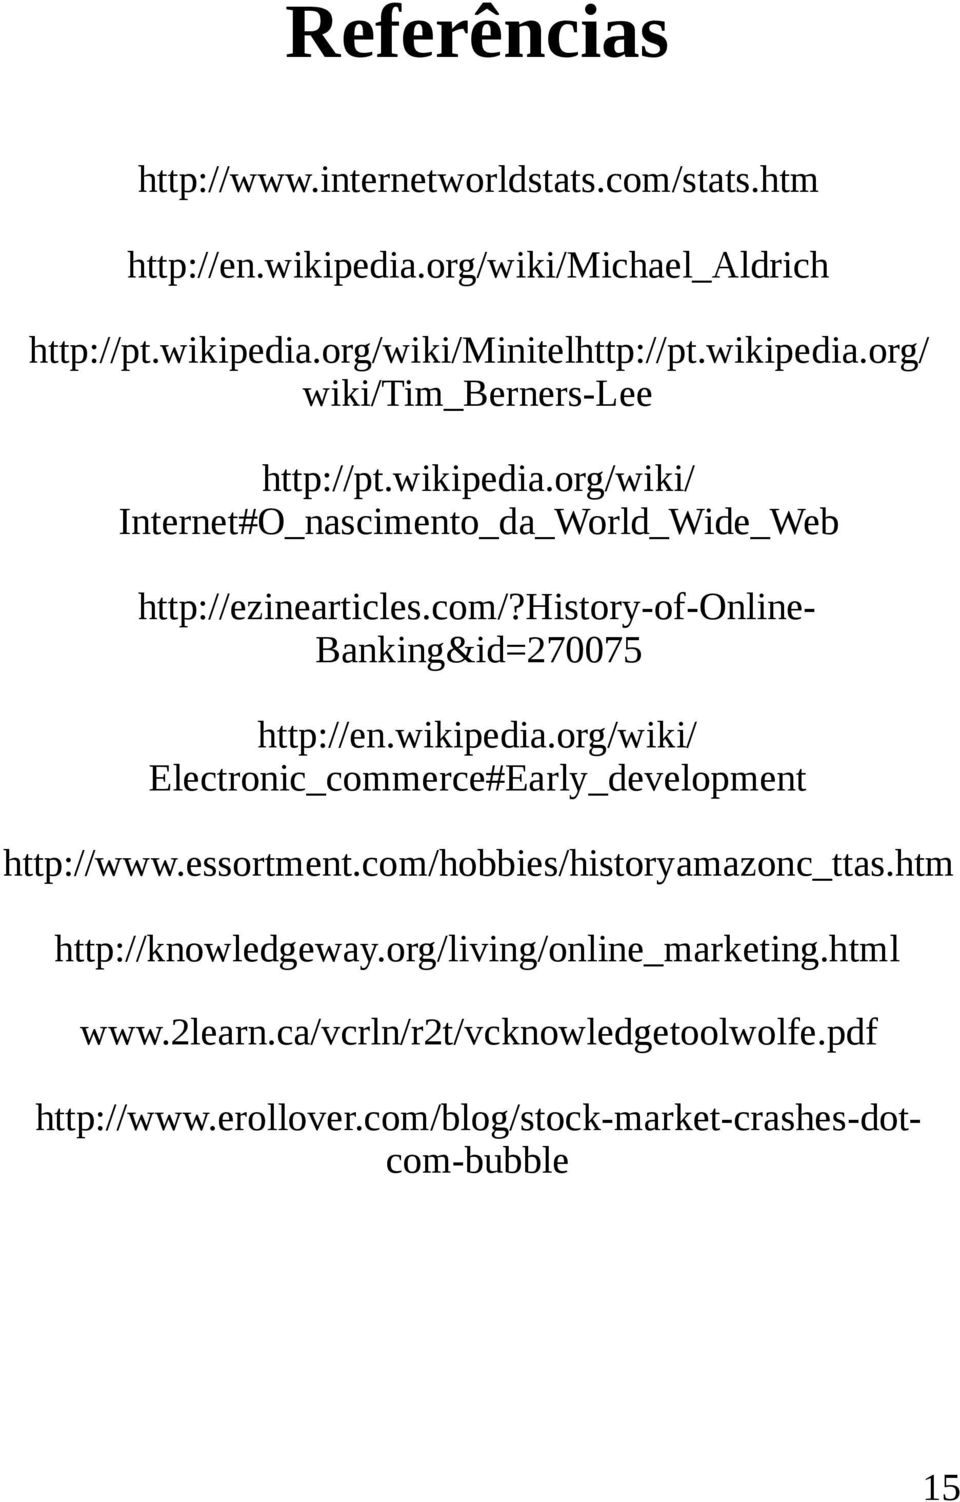 history-of-online- Banking&id=270075 http://en.wikipedia.org/wiki/ Electronic_commerce#Early_development http://www.essortment.